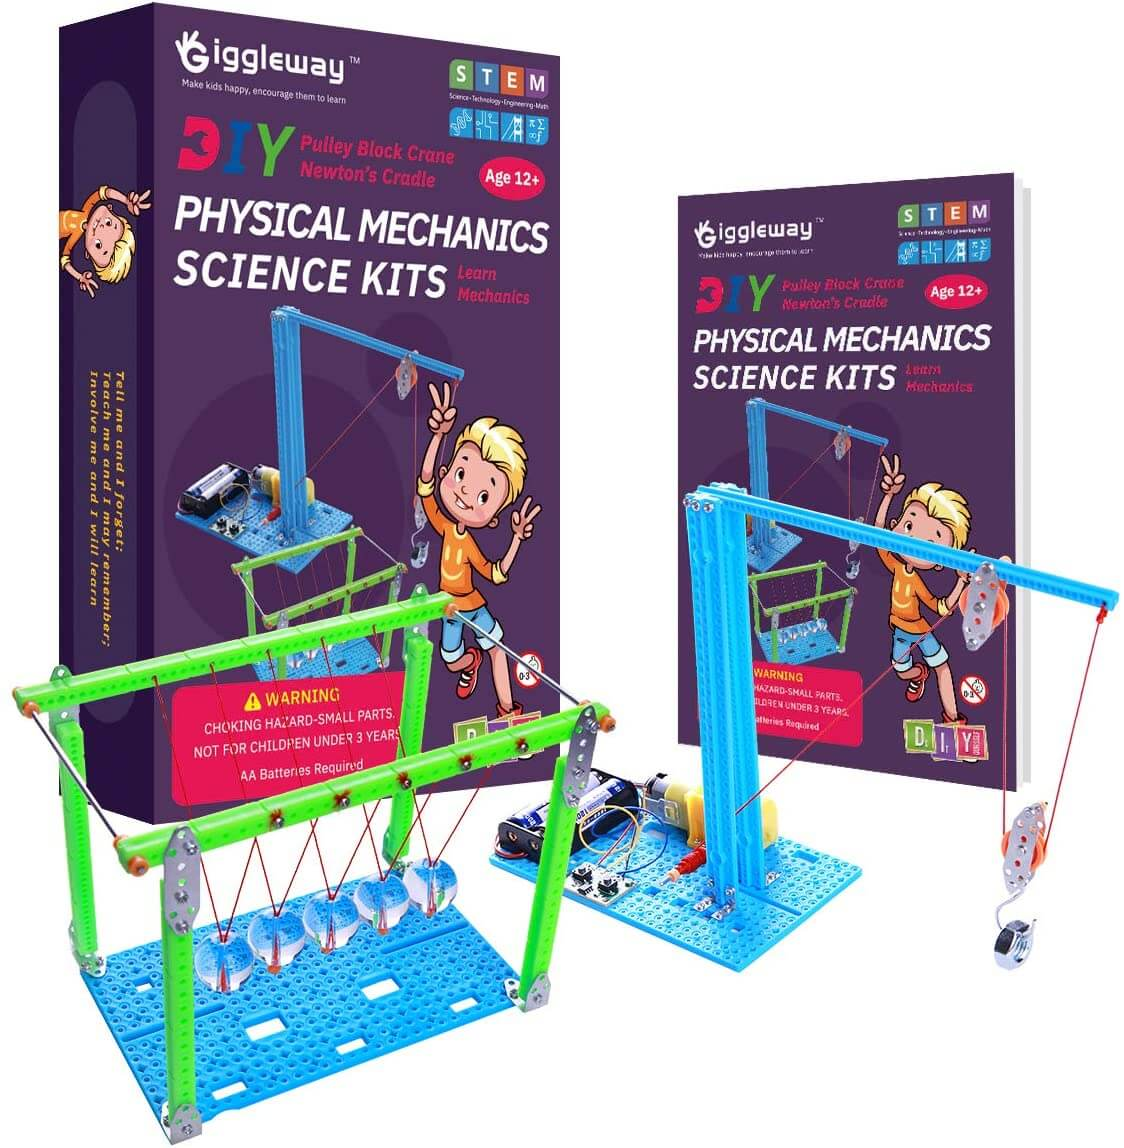 Giggleway Physic lab kits